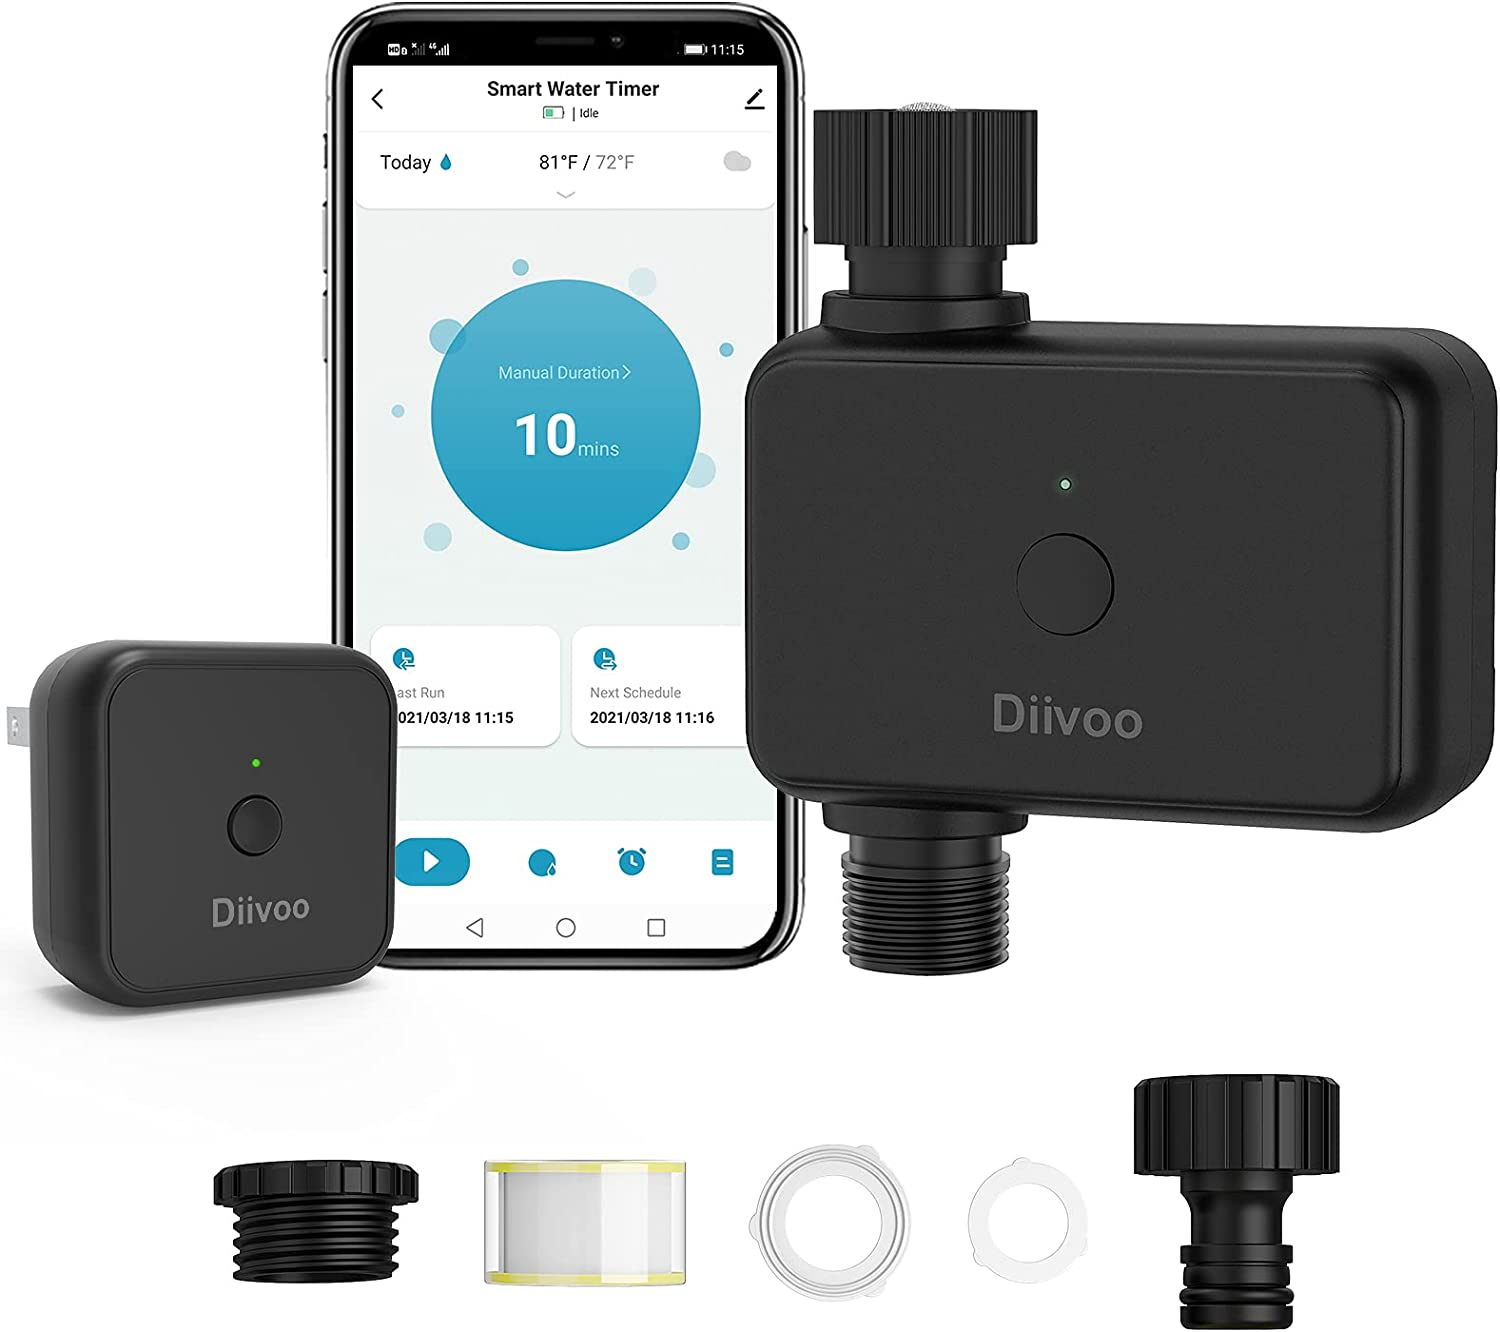 Smart Water Timer with WiFi Hub, Diivoo WiFi Sprinkler Hose Timer Works with Alexa and Google Assistant via Wireless Hub for Garden Lawn and Pool Filling